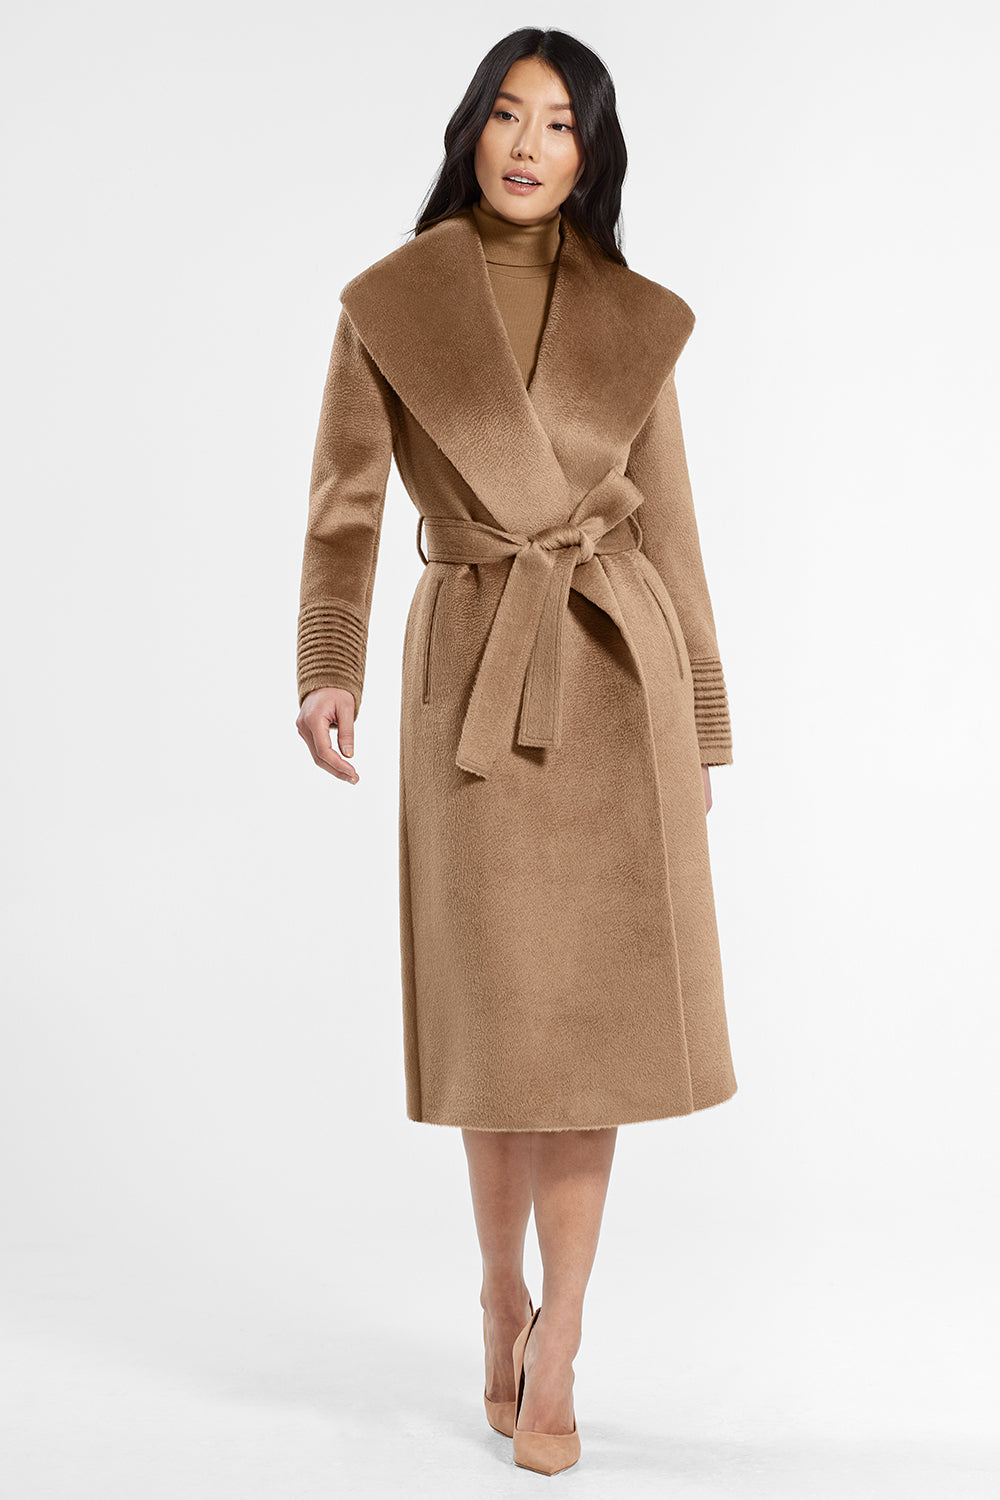 Sentaler Suri Alpaca Long Shawl Collar Wrap Coat featured in Suri Alpaca and available in Dark Camel. Seen from front..